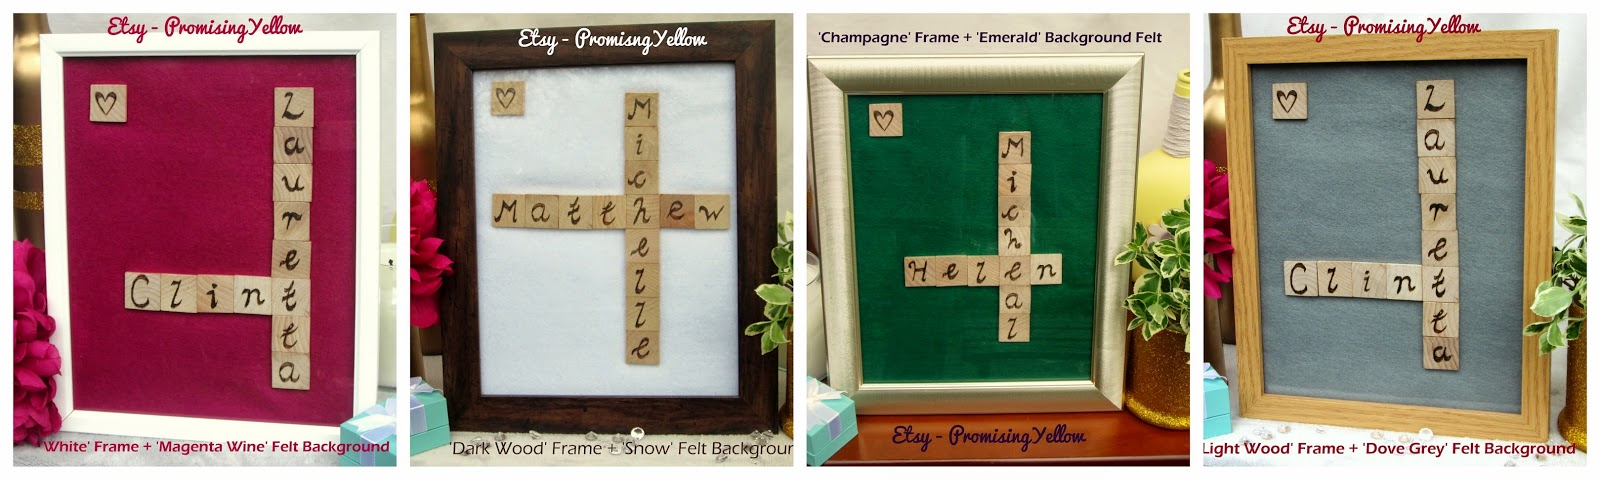 Bespoke personalised wooden tiles with couples name. Romantic gift for a straight or gay couple. Pyrography and wood burning. Customised and personal for sale on etsy. Picture frames and scrabbles tiles and calligraphy.